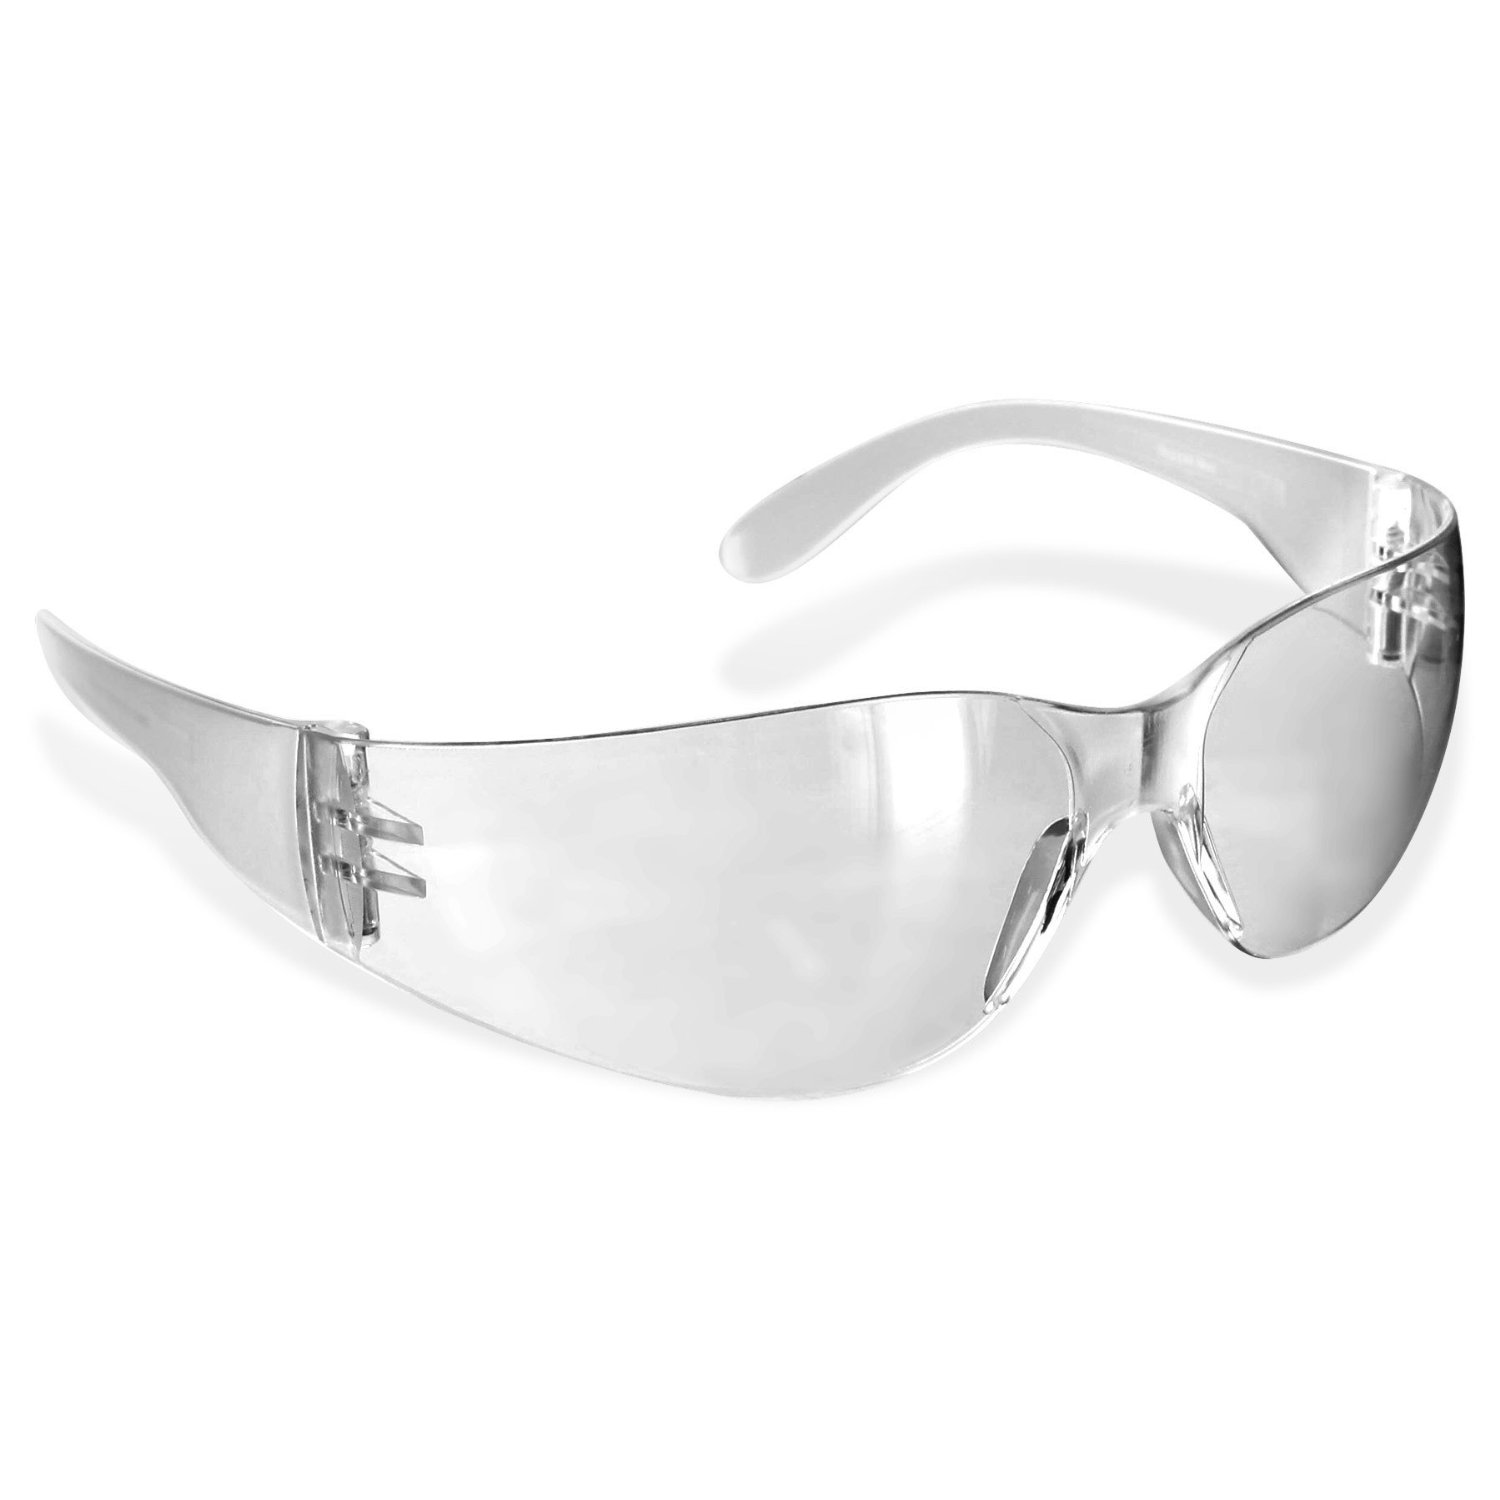 Clic Original Clear Reading Glasses